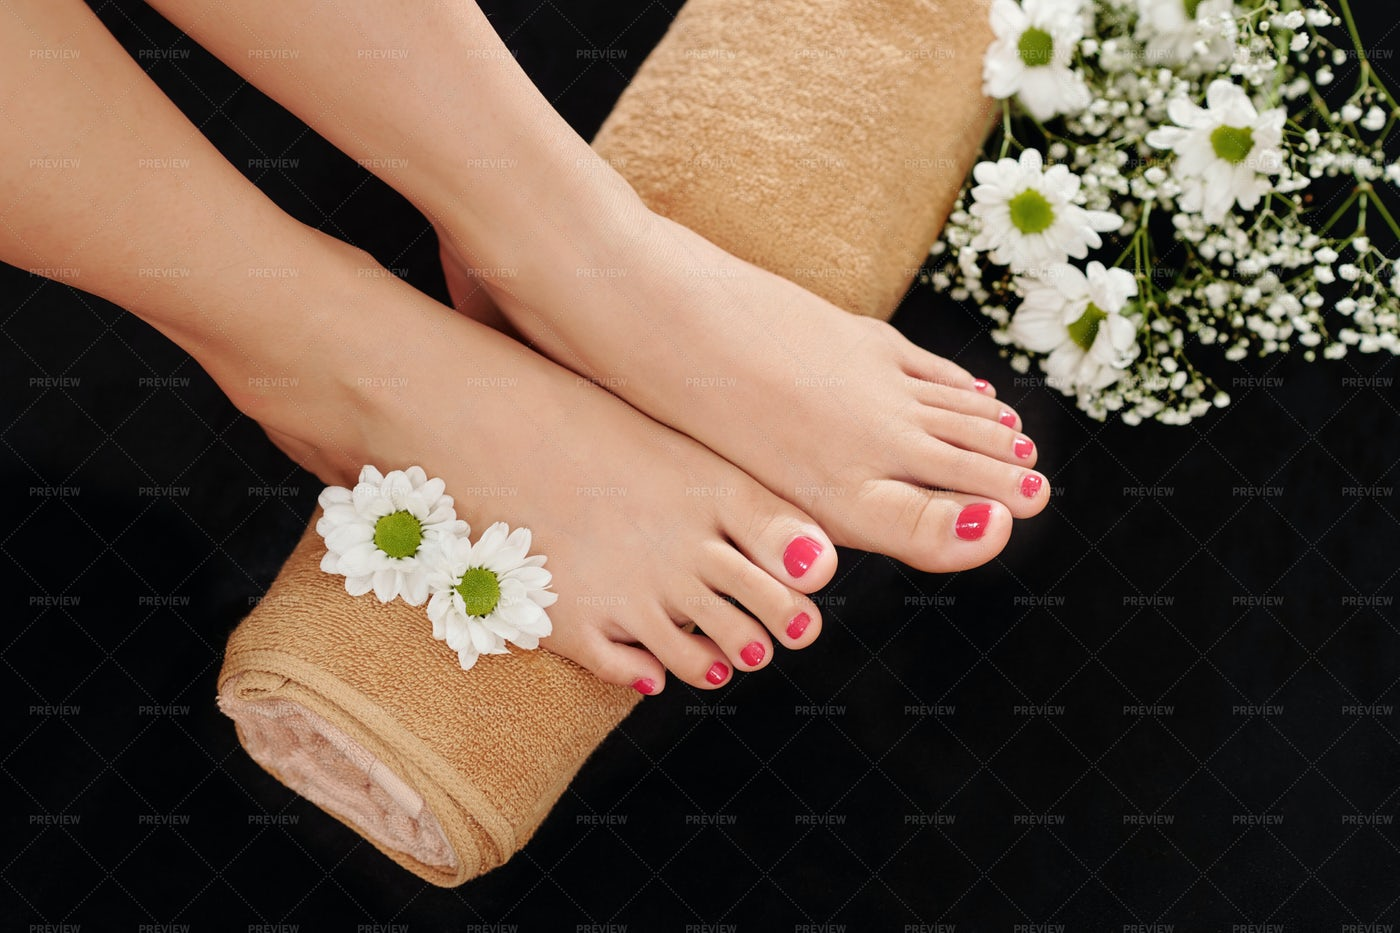 Manicured Feet On Rolled Towel: Stock Photos